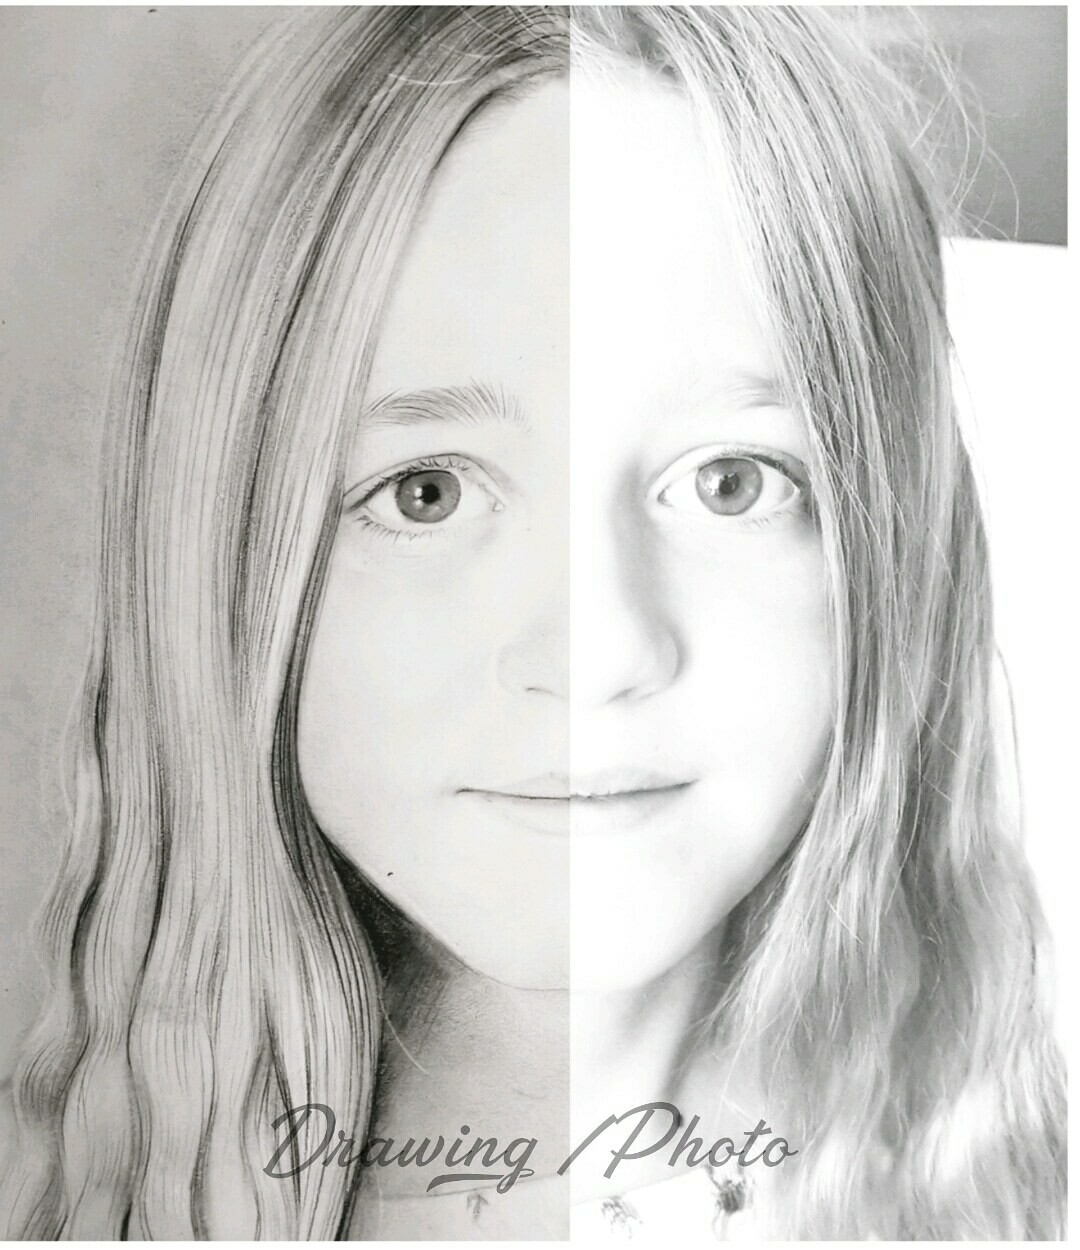 Realistic portrait creation from your photo